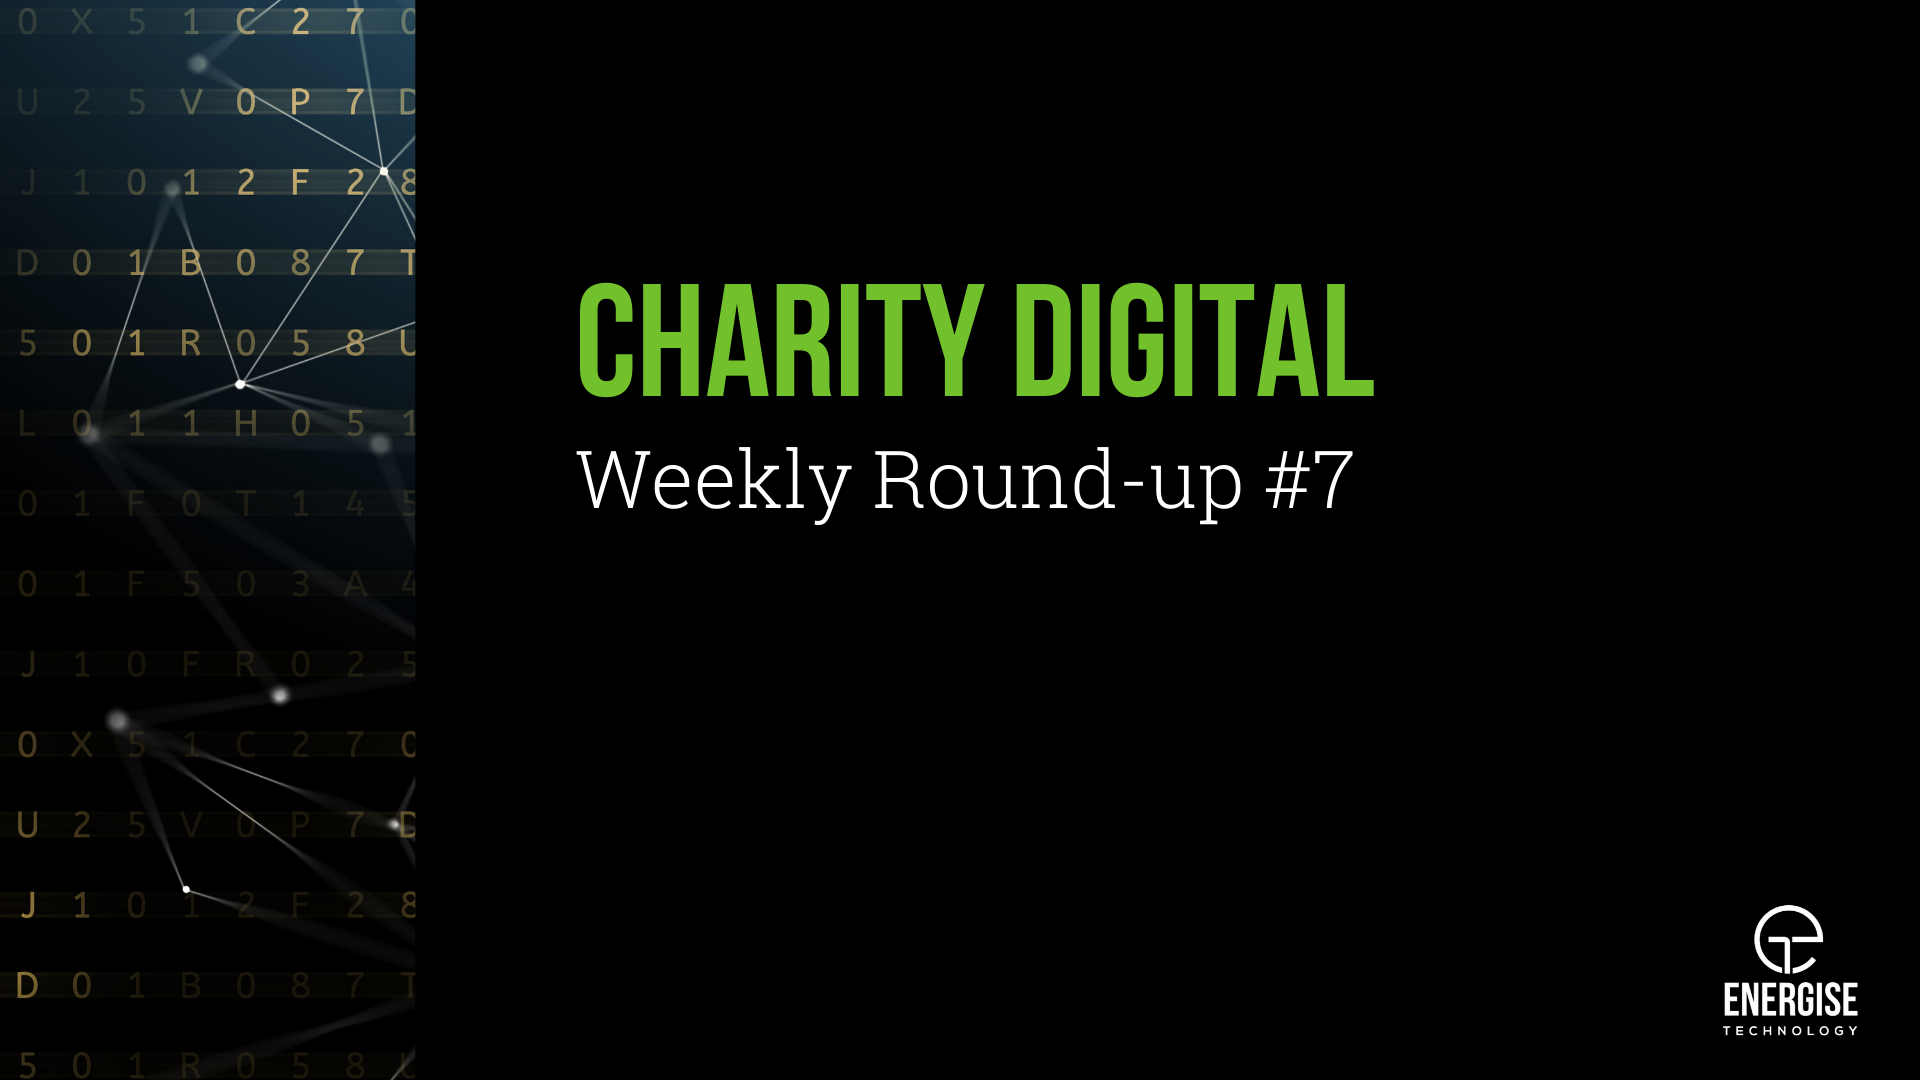 Charity Digital Weekly Roundup #7